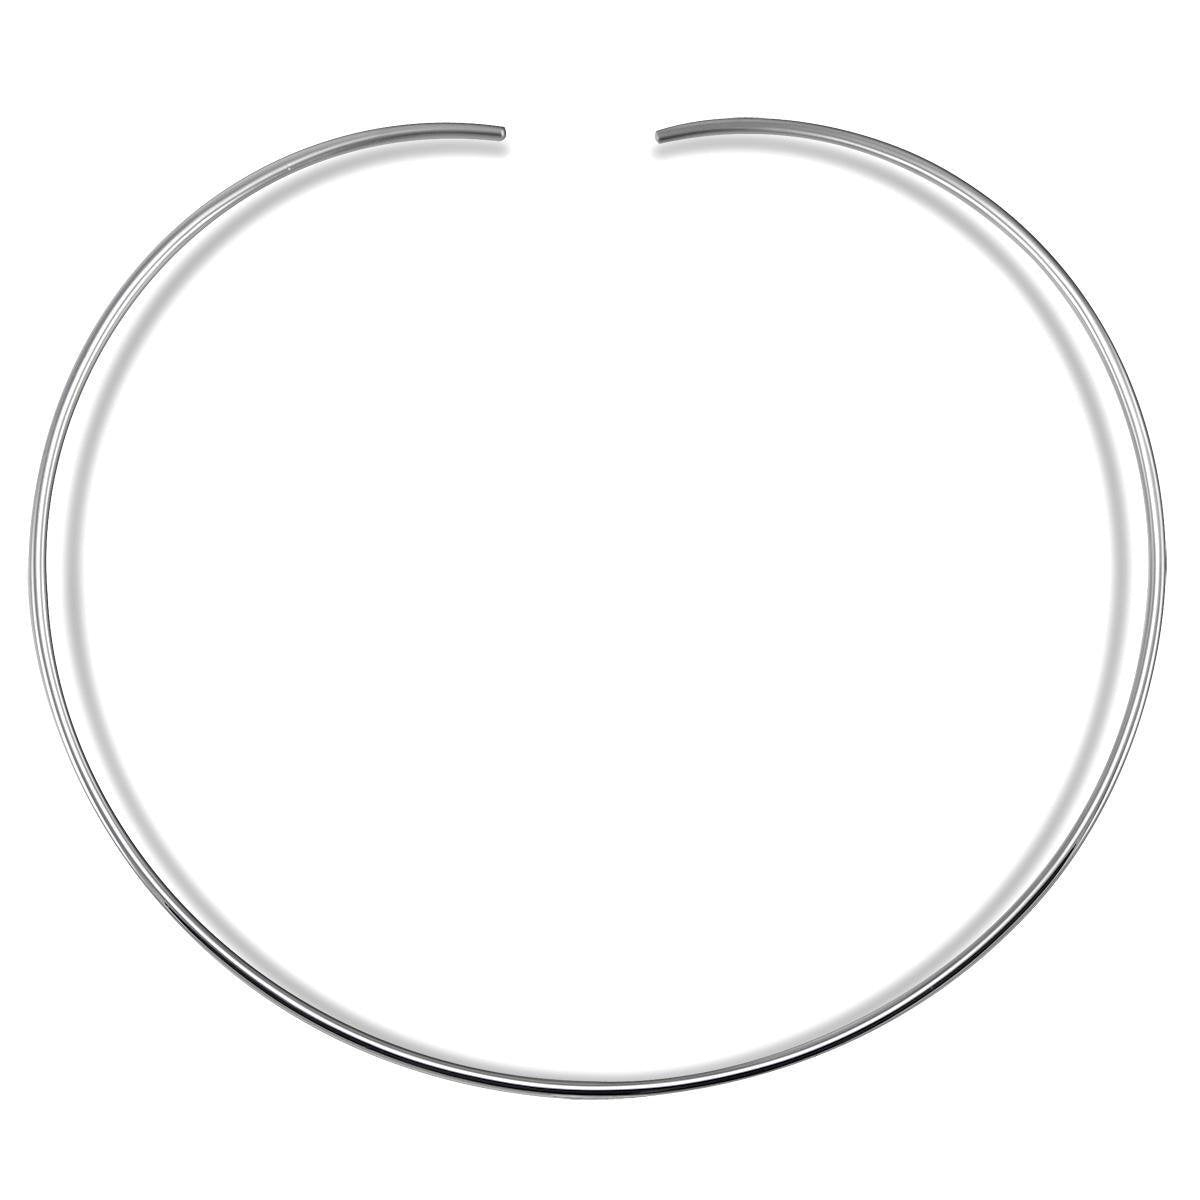 7MM Plain Collar Choker Chain .925 Sterling Silver No Clasp-5.25